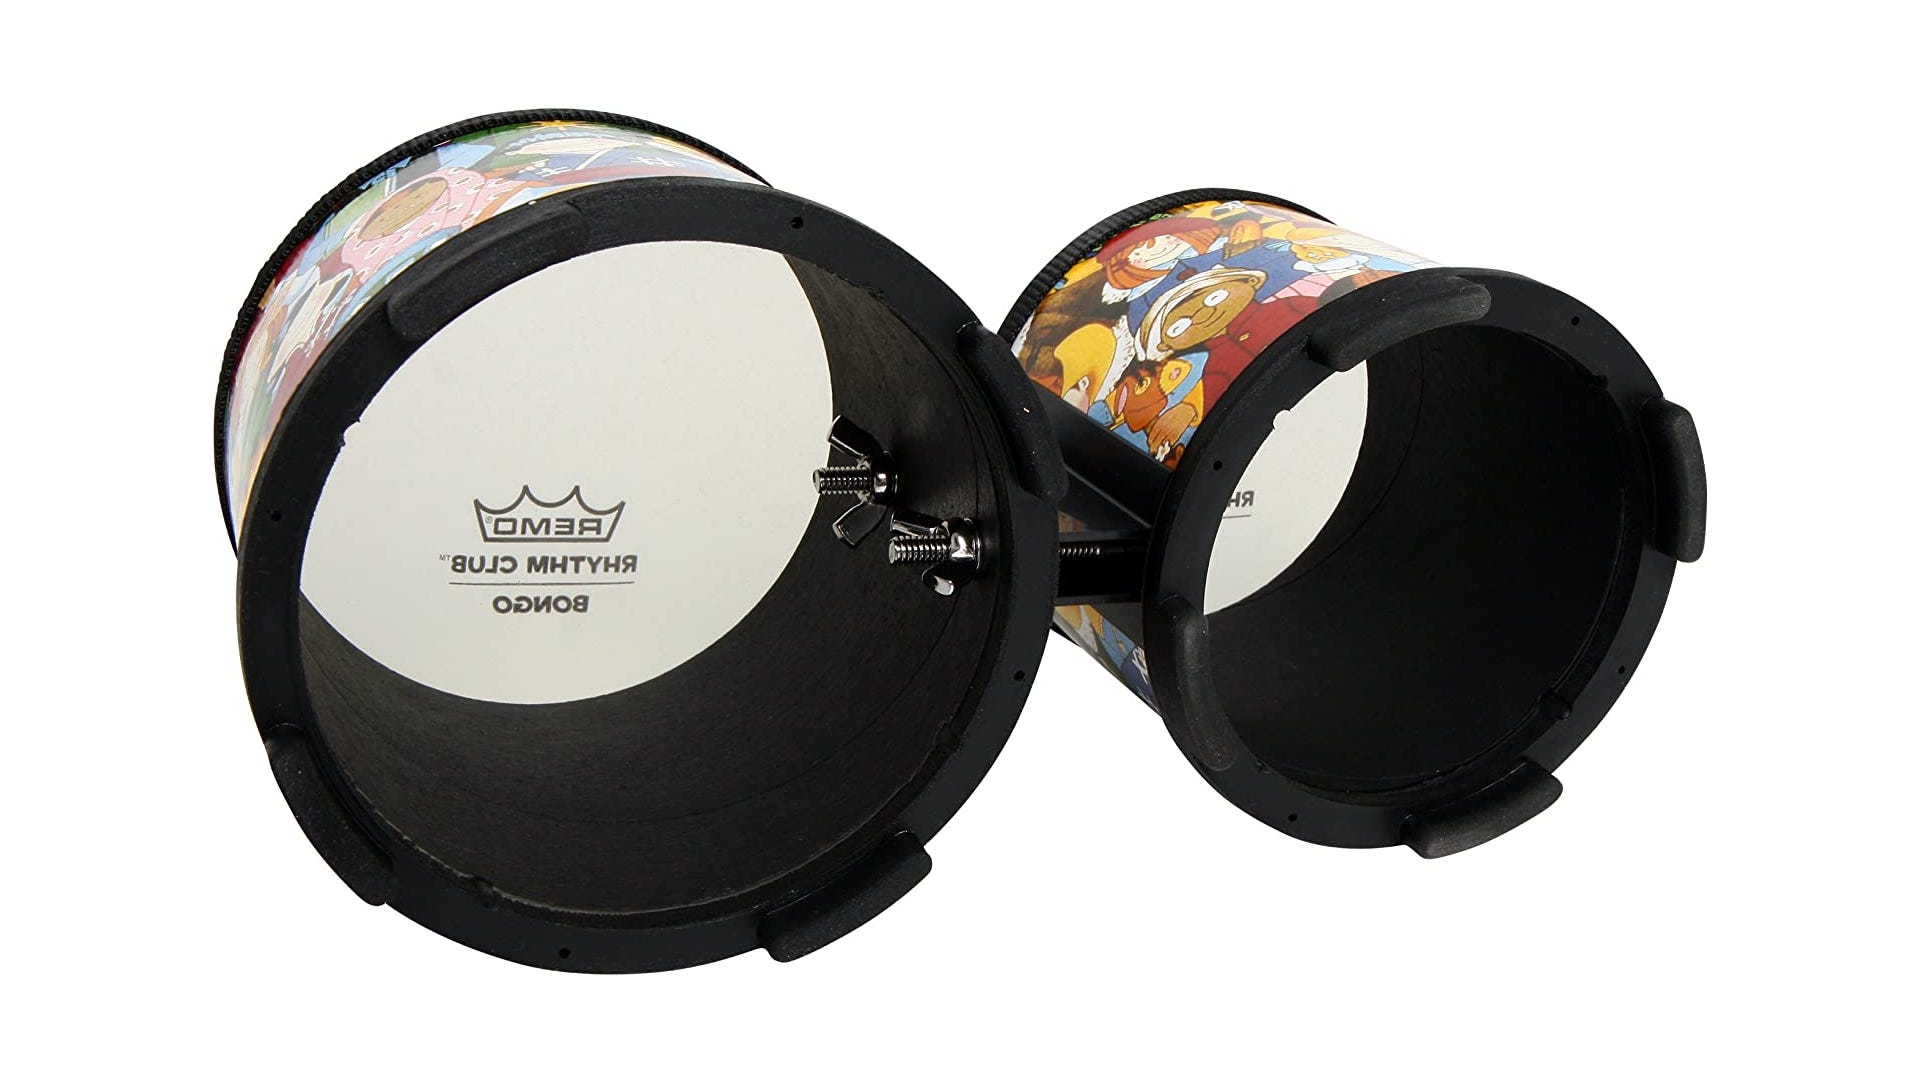 bottom view of bongos featuring a child-friendly design are displayed against a white background.